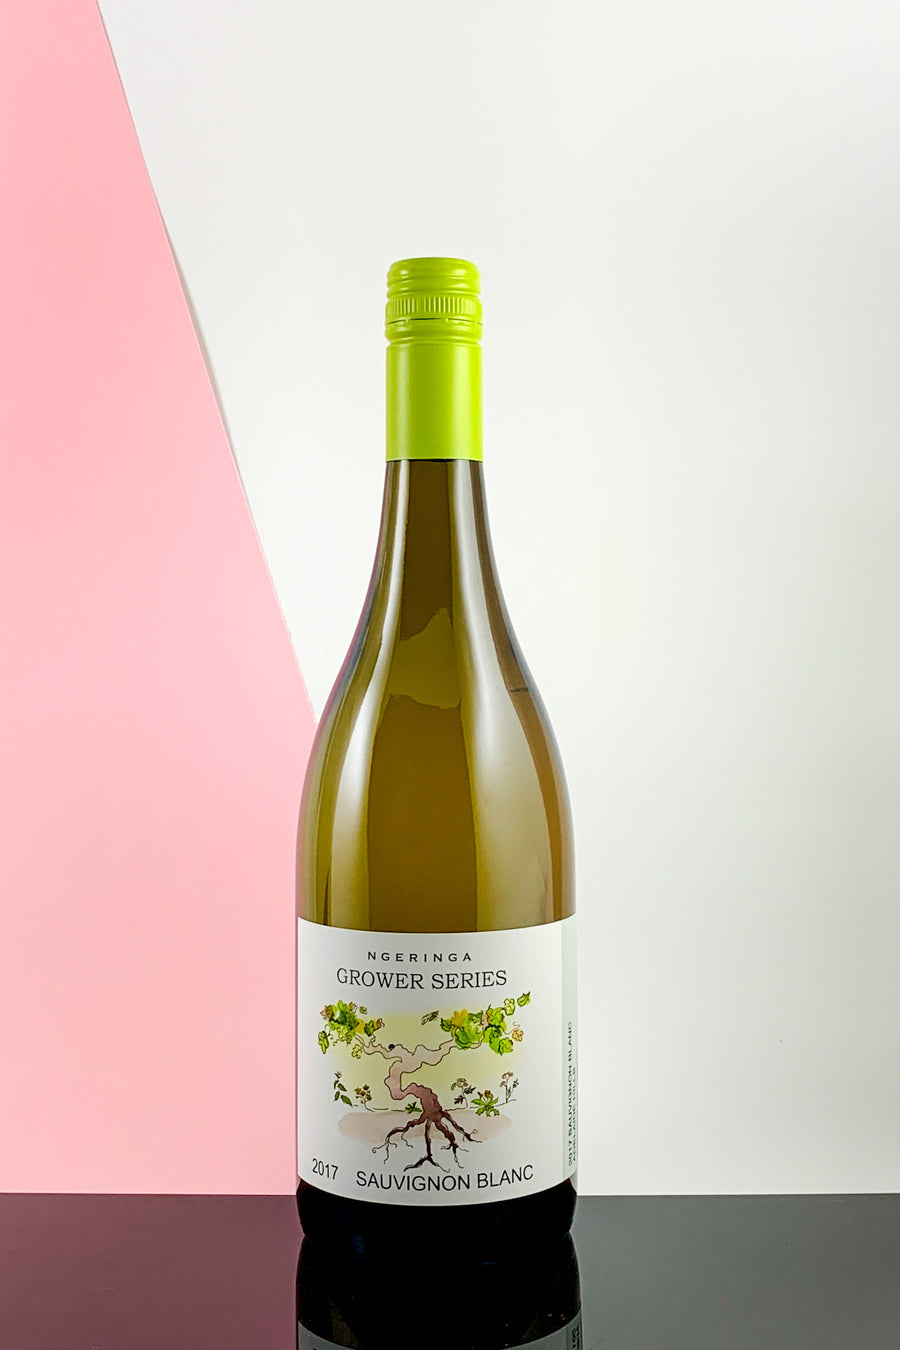 Ngeringa Growers Series Sauvignon Blanc 2017